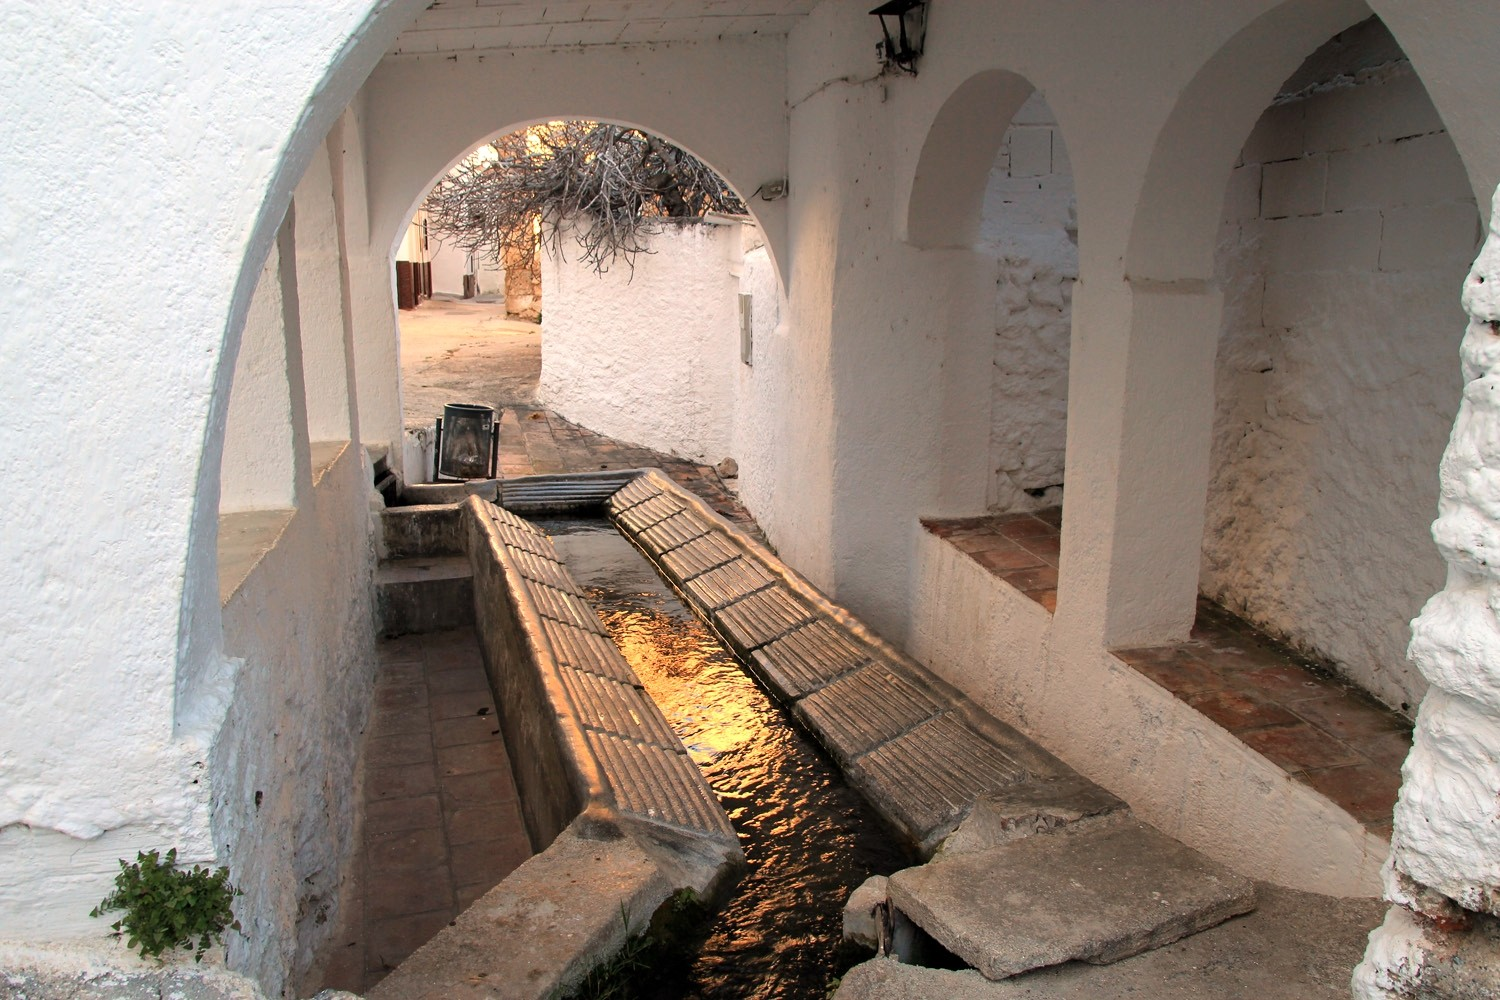 The Washing Sinks of Albuñuelas